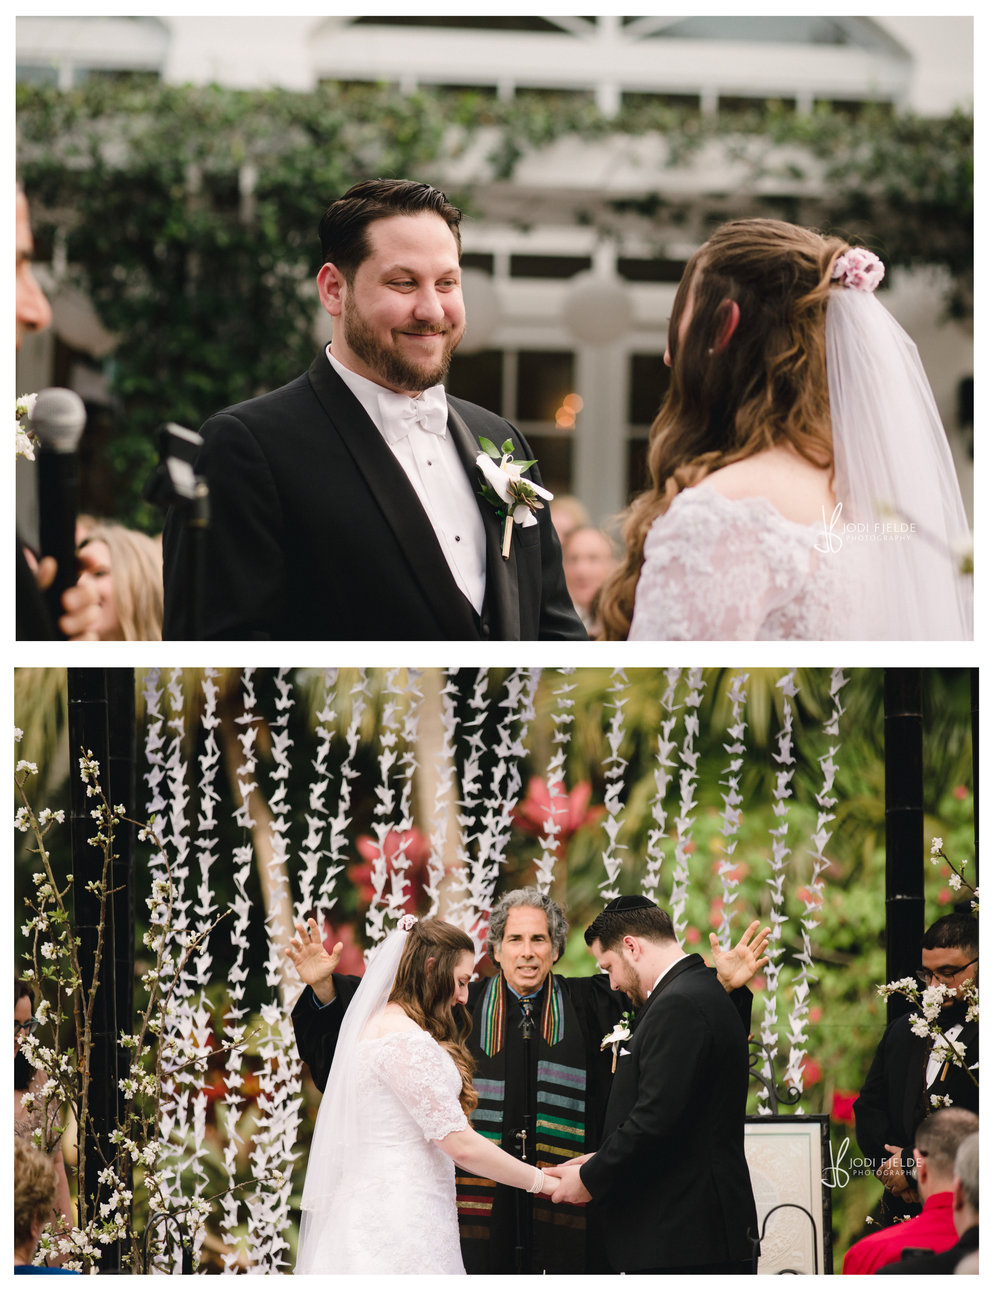 Deer_Creek_Country_Club_Wedding_Jodi_Fjelde_Photography_Andrea_Jason_11.jpg